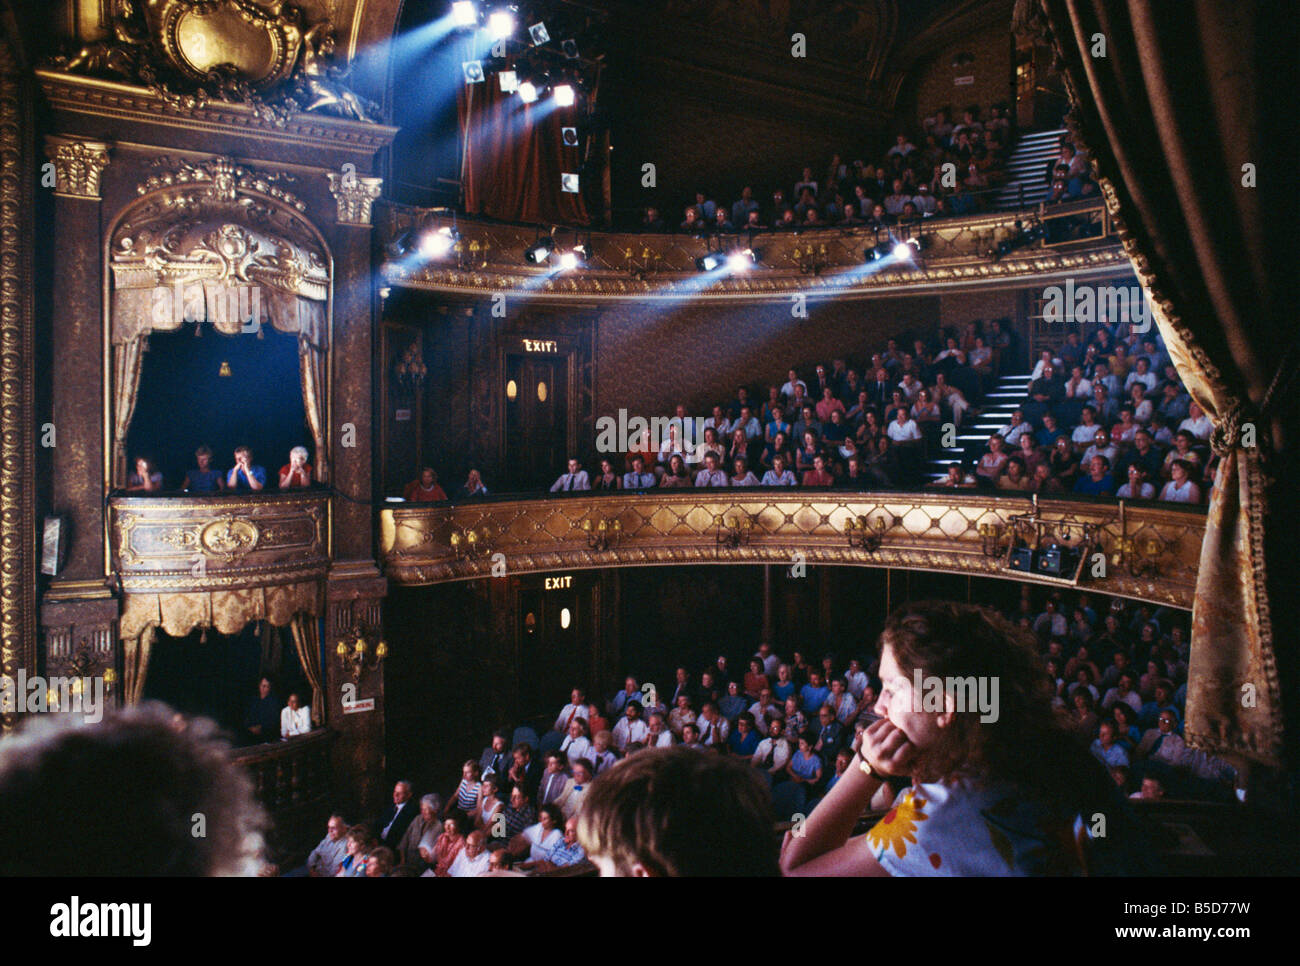 The audience at the Theatre Royal, Haymarket, London, England, Europe - Stock Image